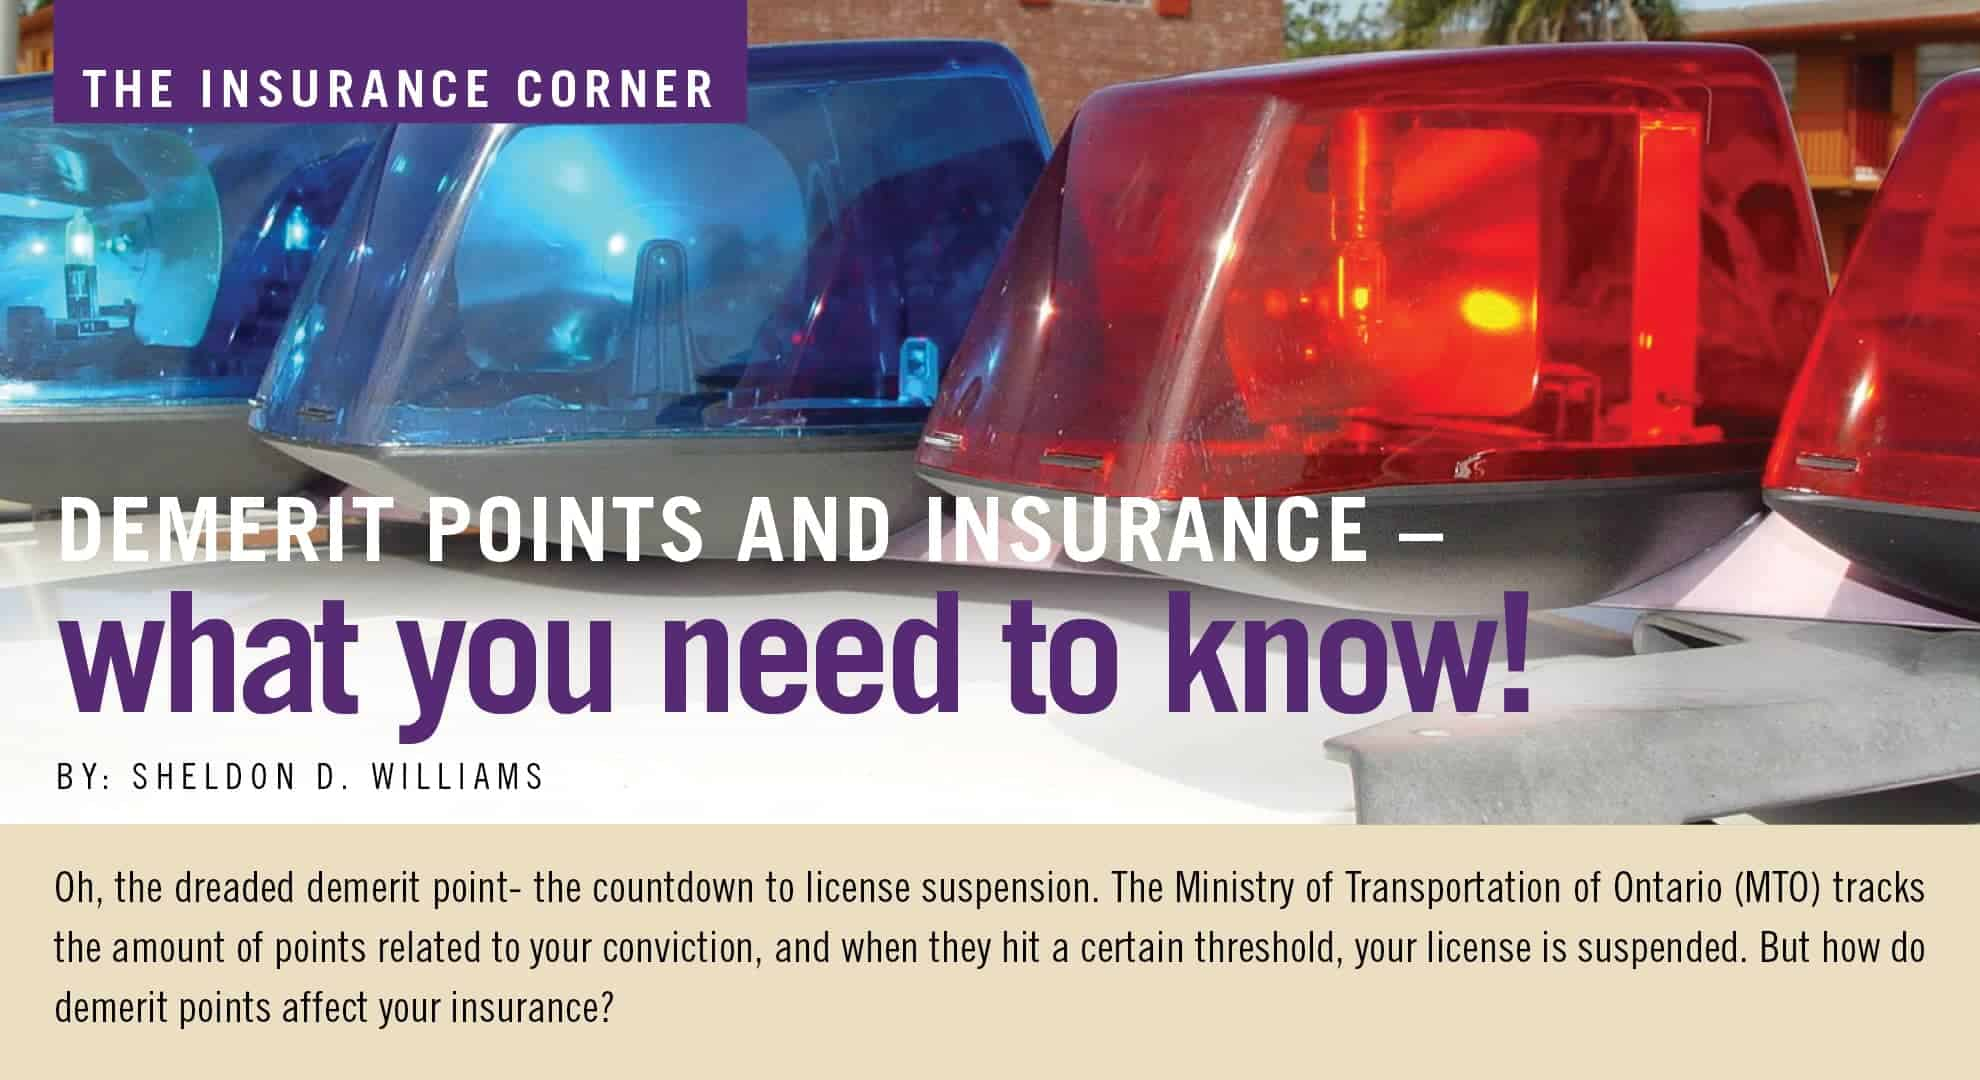 Demerit Points - What You Need to Know